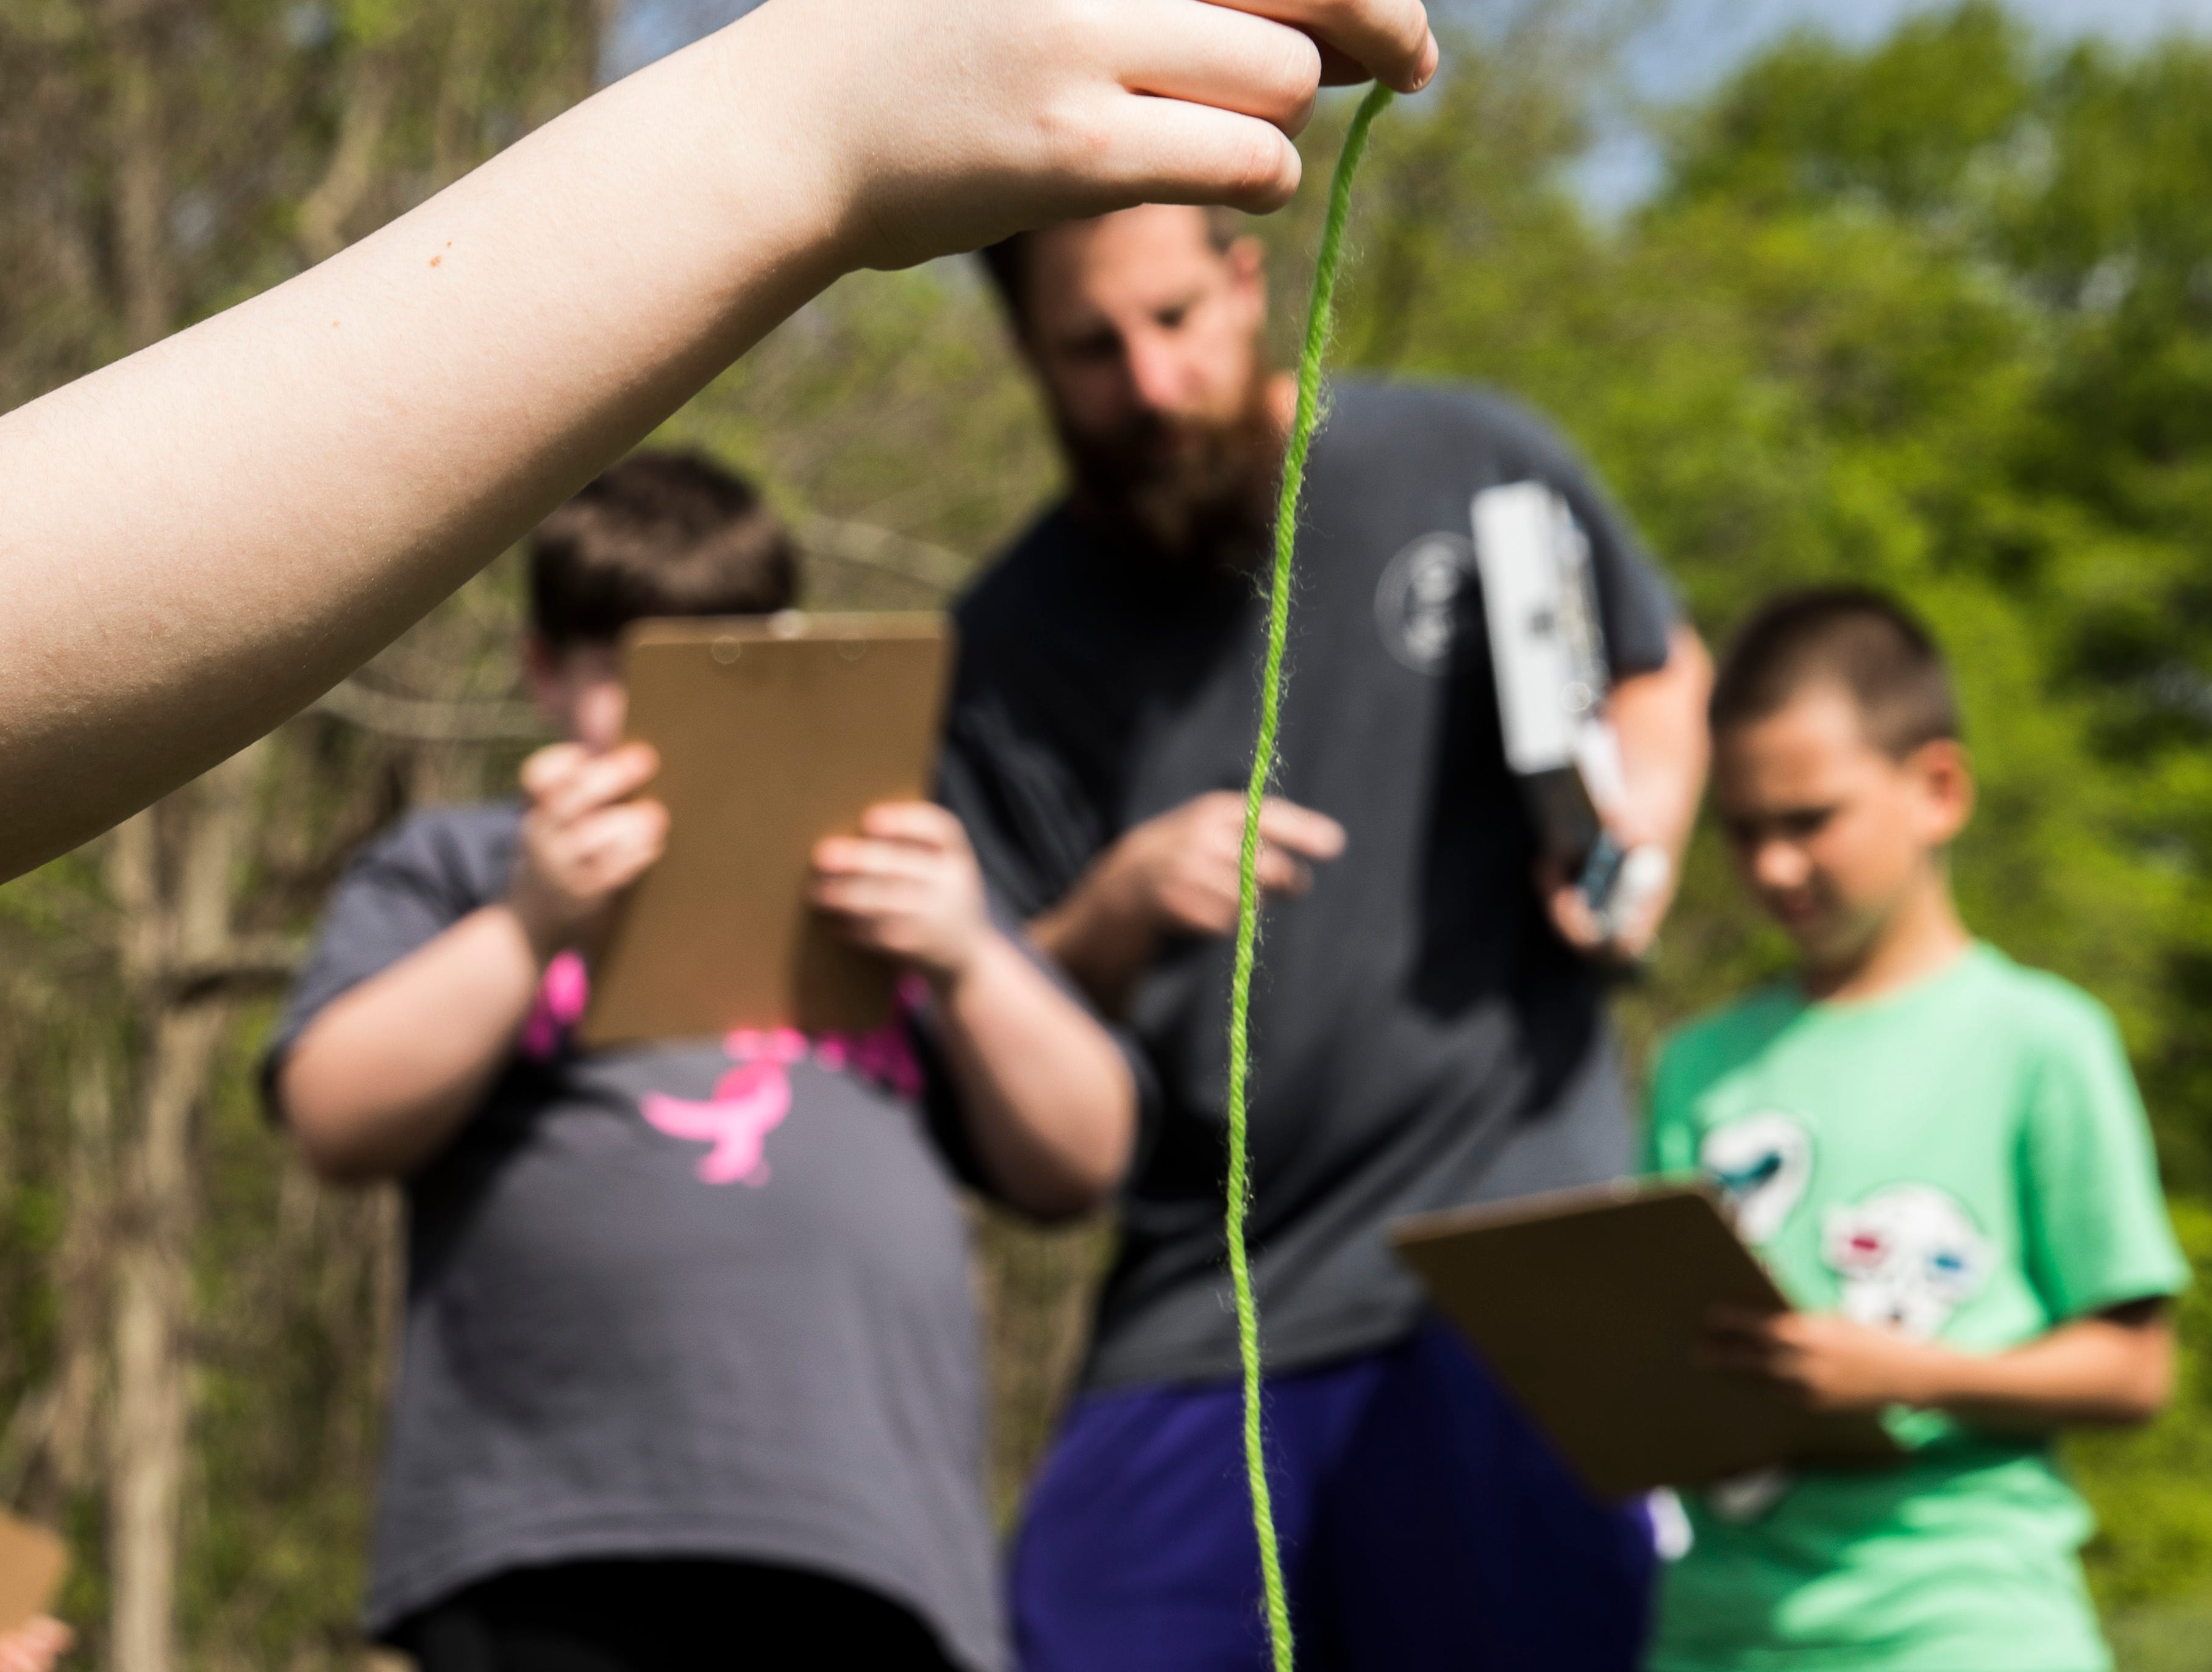 As part of the Science, Technology, Engineering and Math (STEM) program, students from Chillicothe Primary School visited Buzzards Roost Nature Preserve to learn hands on about the wind and its affects on nature.